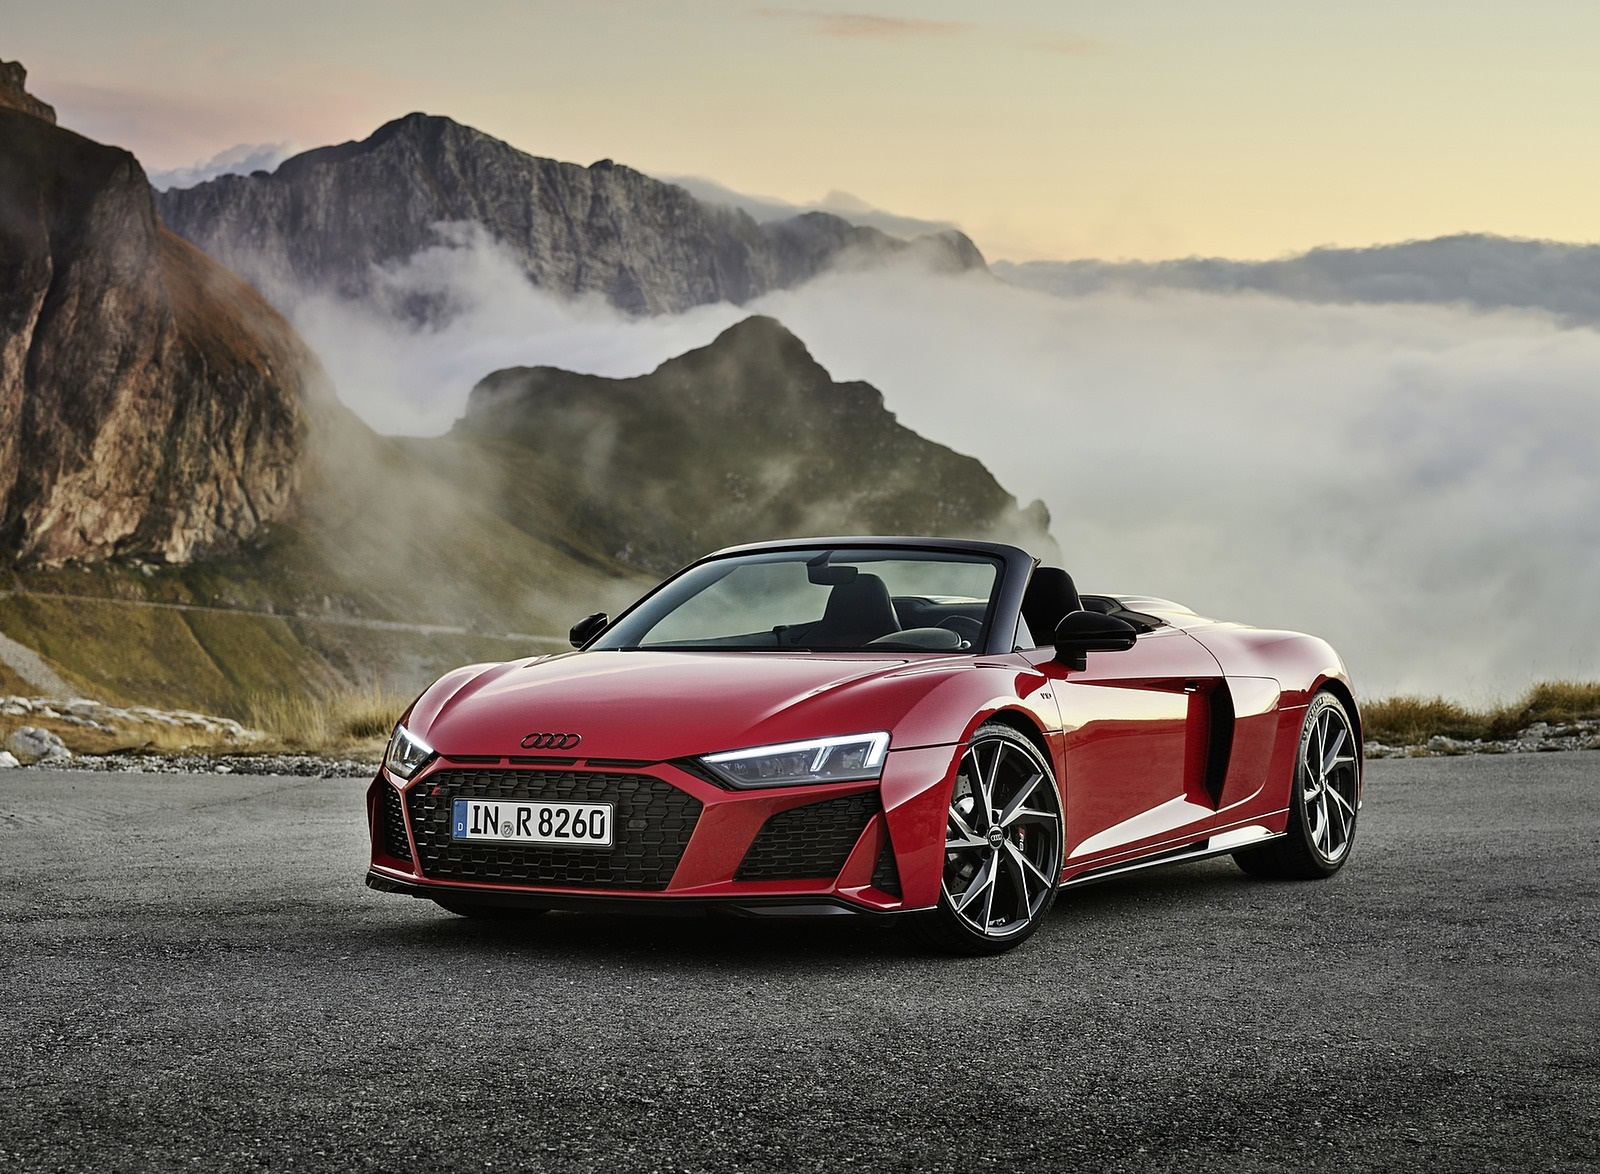 2020 Audi R8 V10 RWD Spyder (Color: Tango Red) Front Three-Quarter Wallpapers (8)